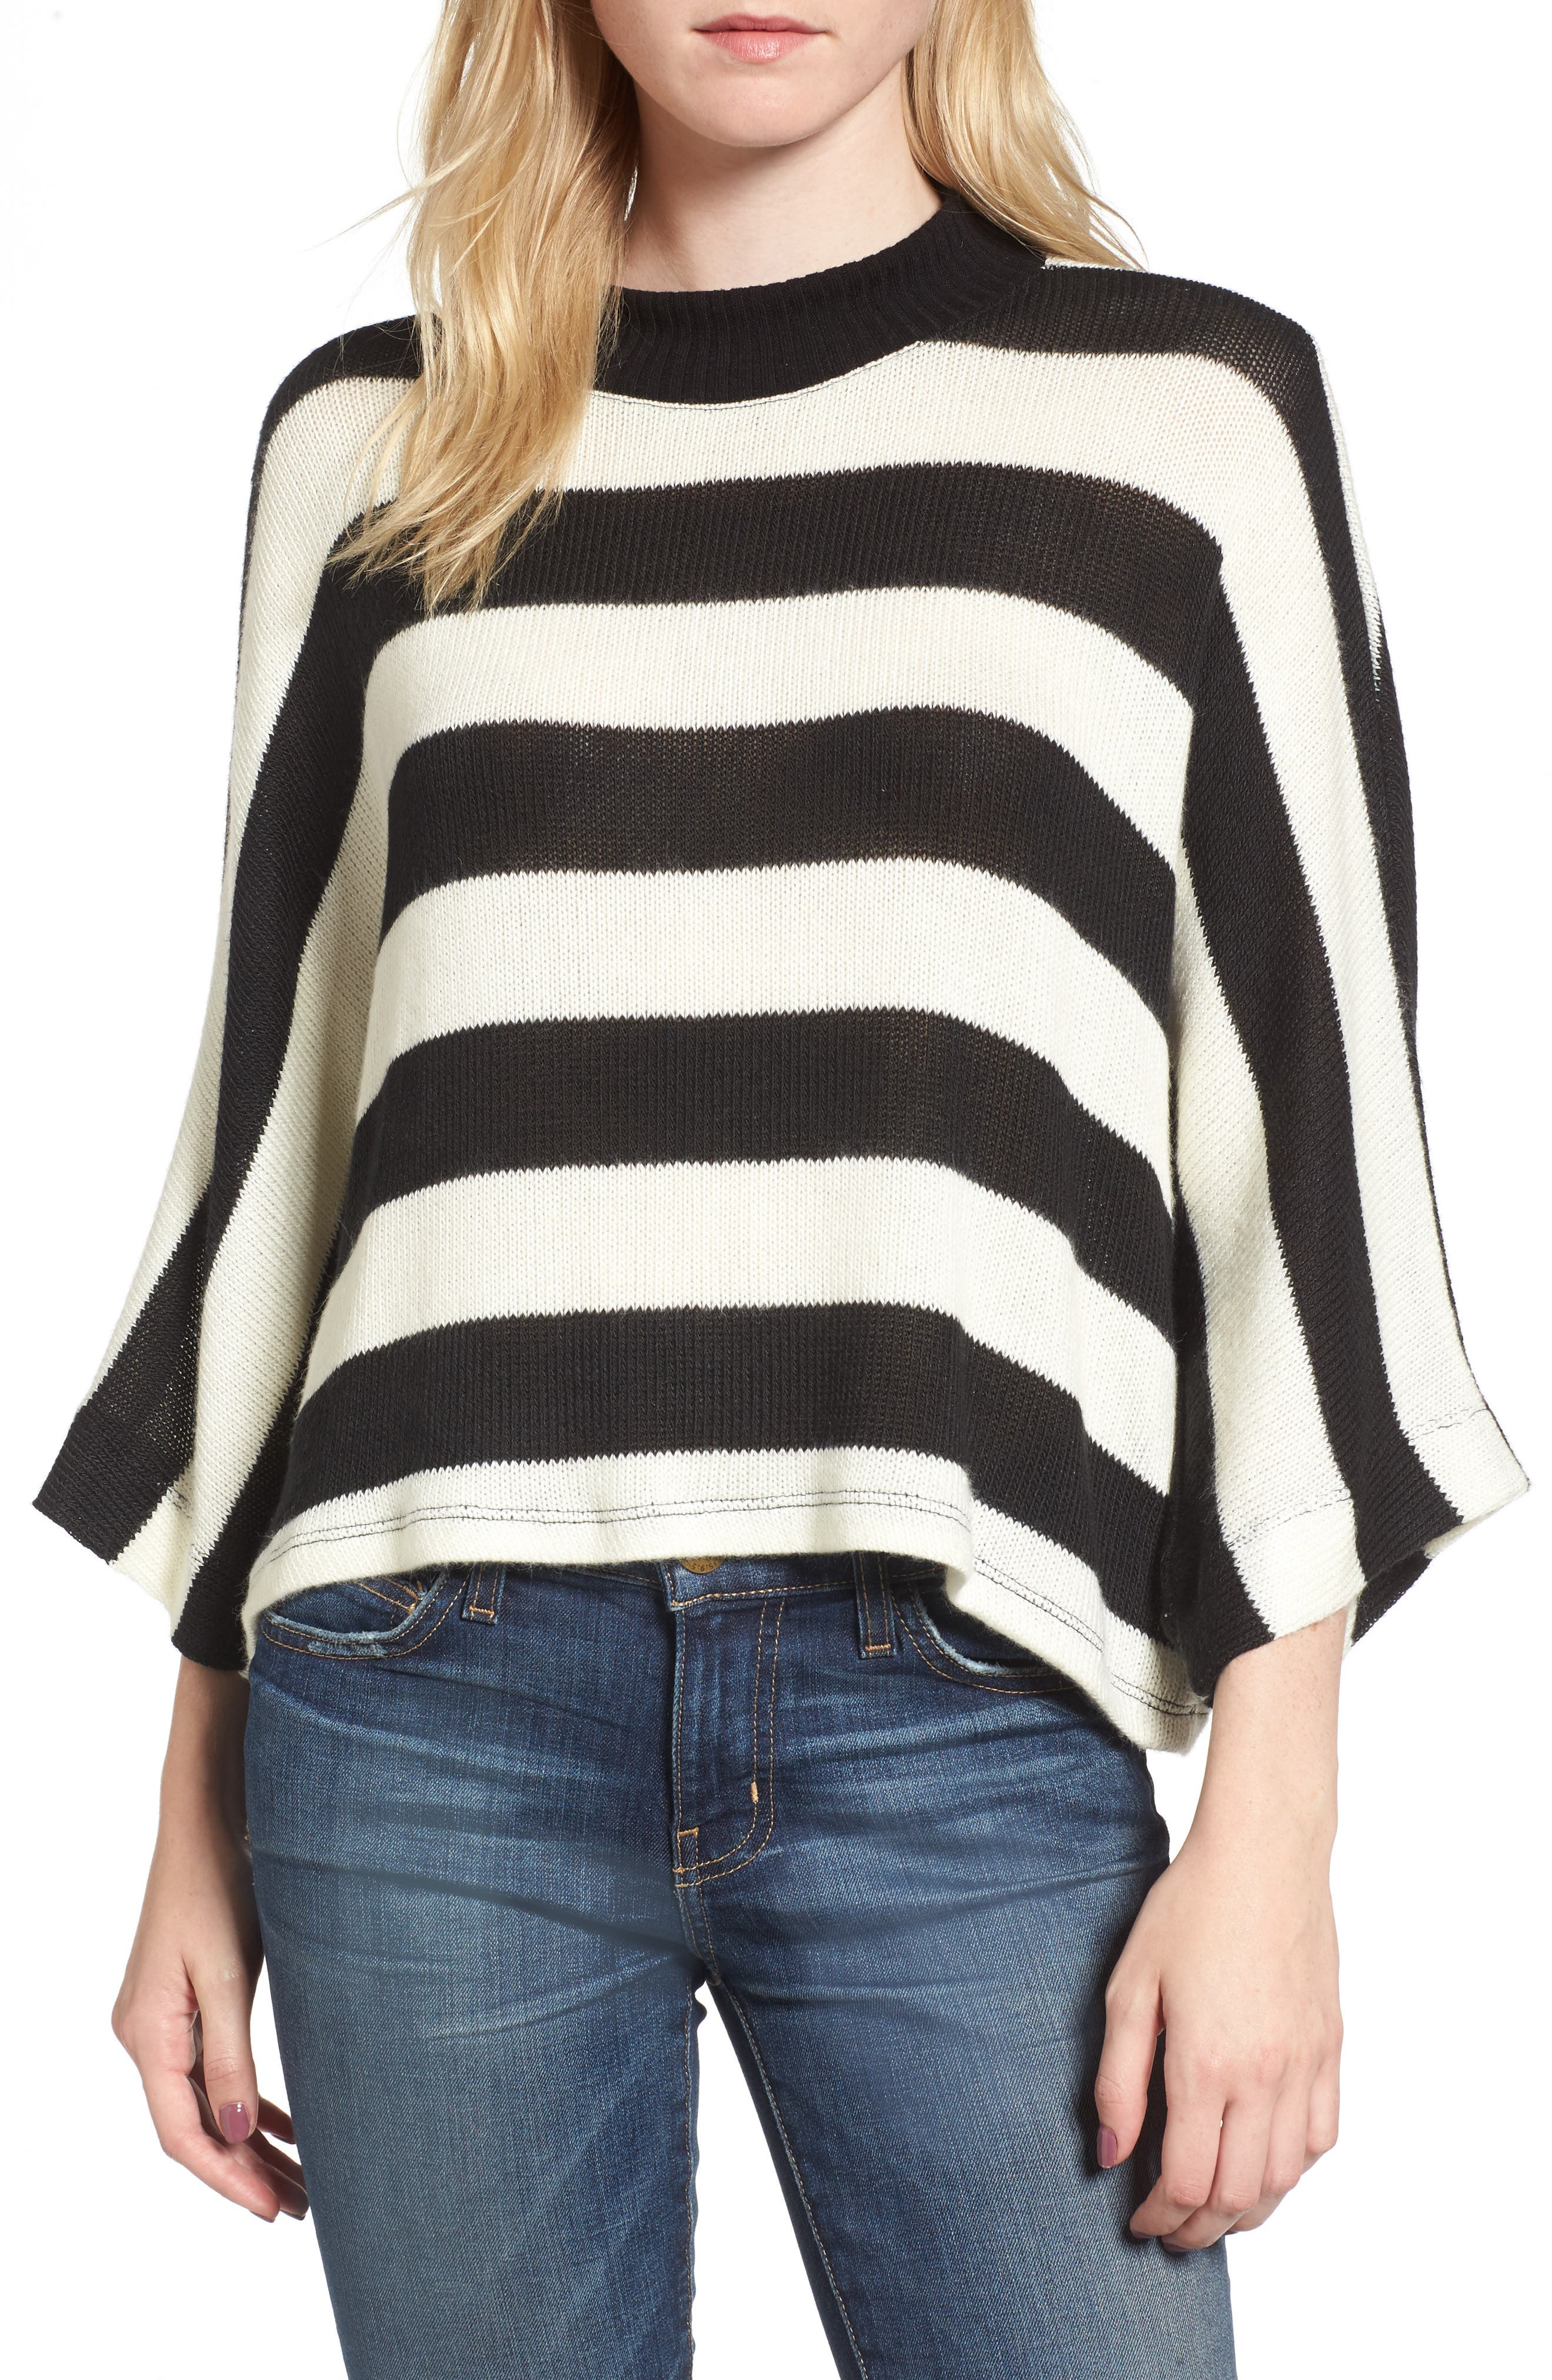 Kingston Stripe Sweater,                             Main thumbnail 1, color,                             001